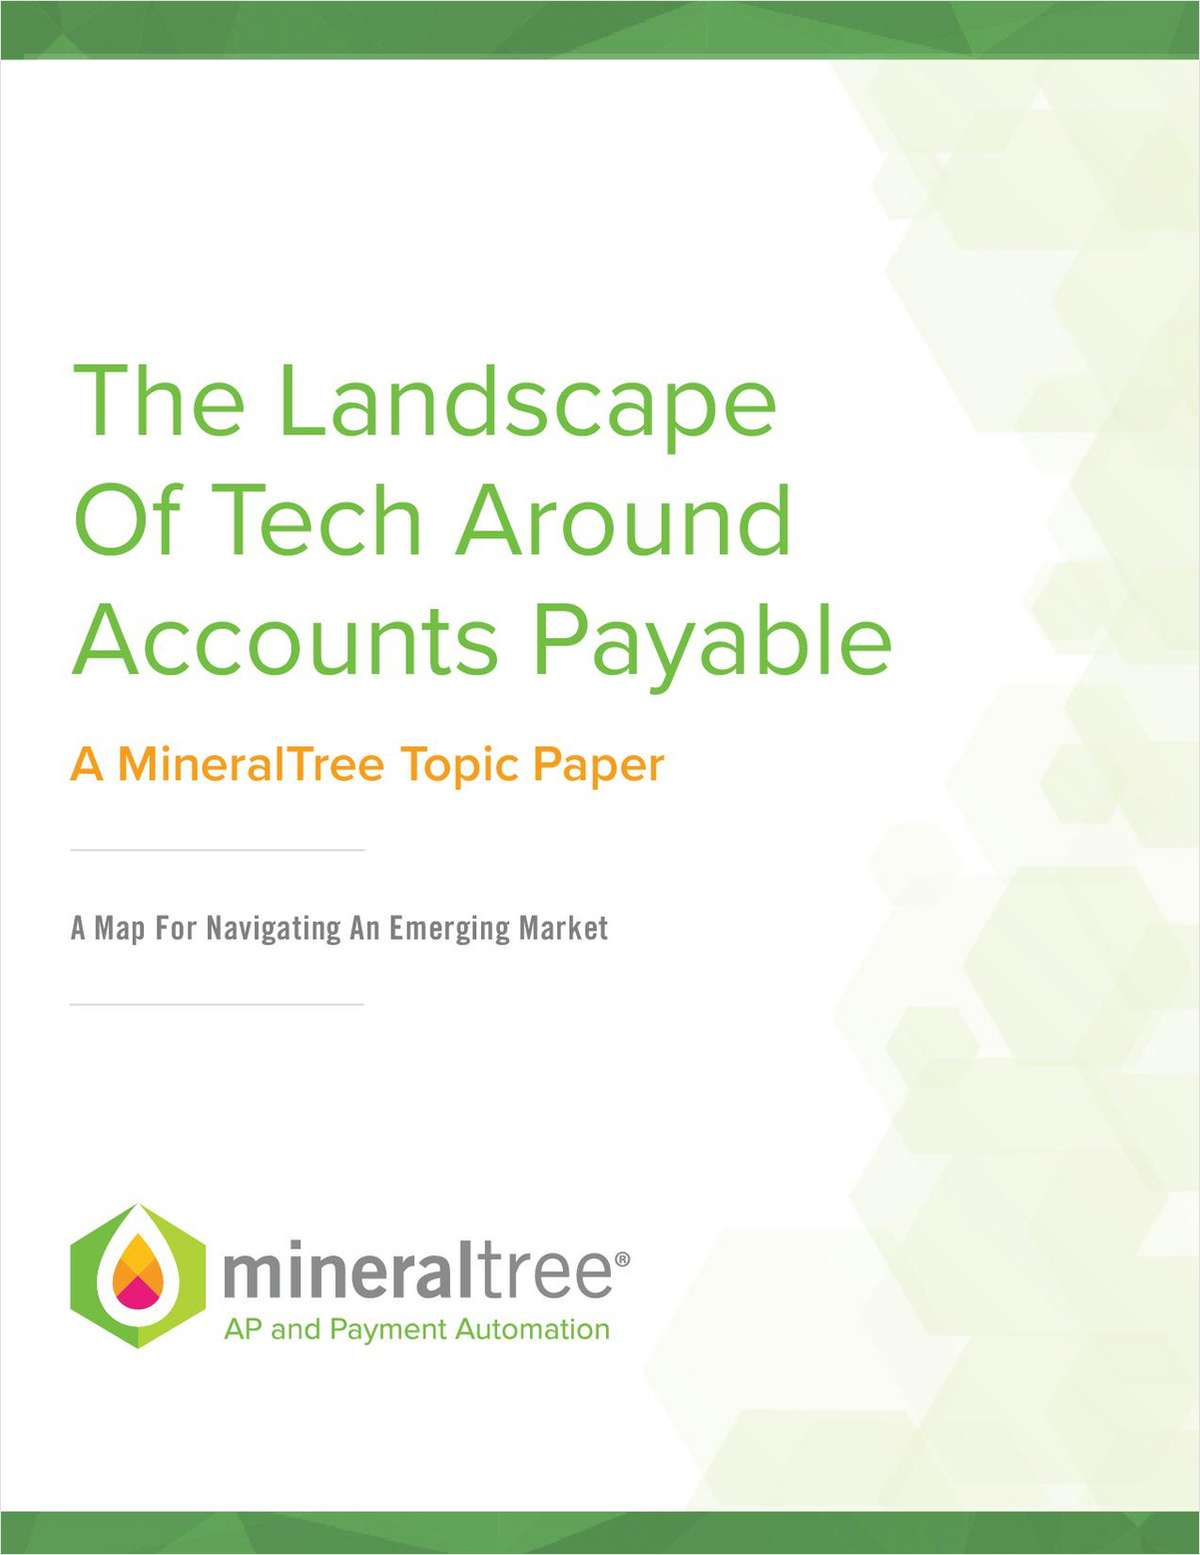 The Landscape of Technologies for Accounts Payable Automation